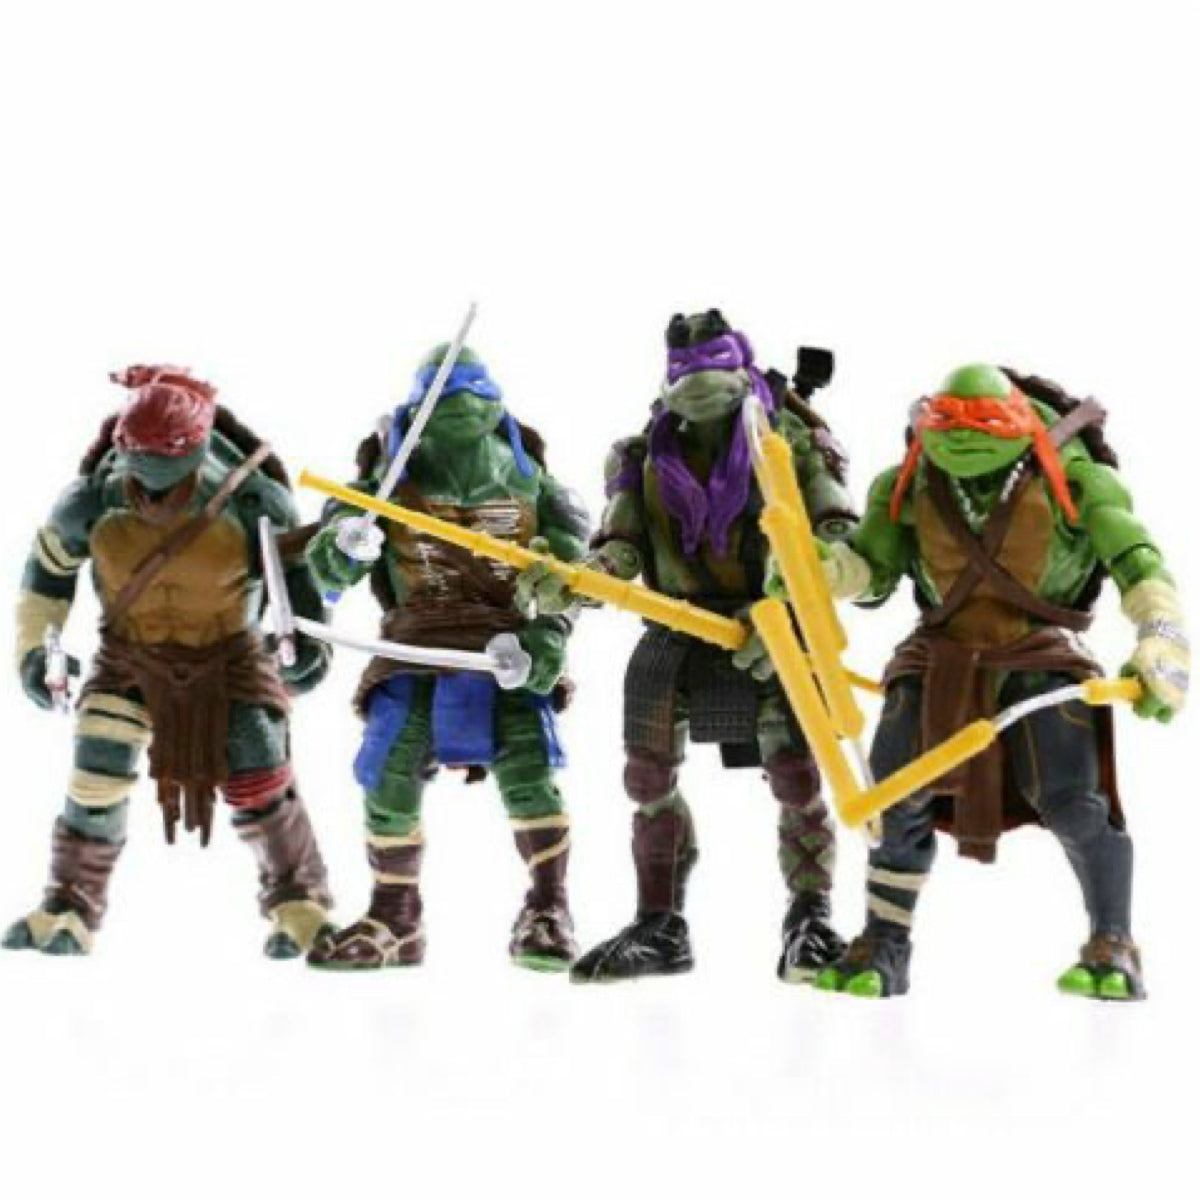 4-Pack Teenage Mutant Ninja Turtles Action Figures